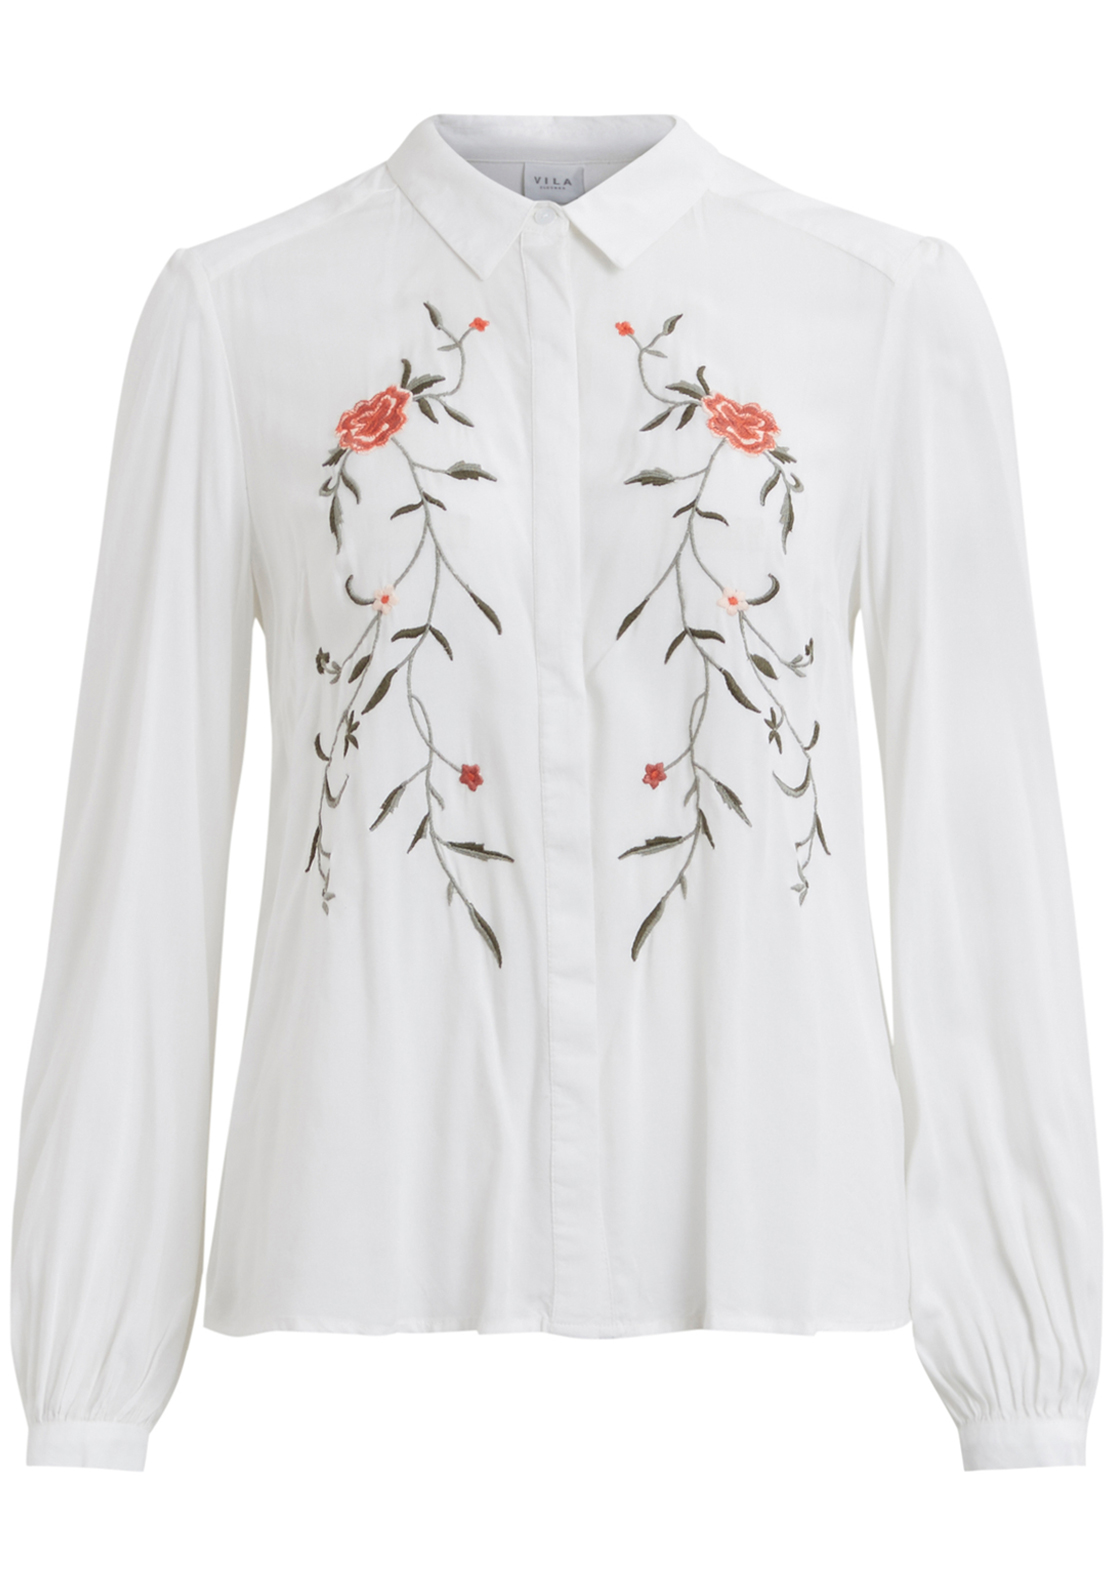 Vila Brodie Embroidered Shirt, White